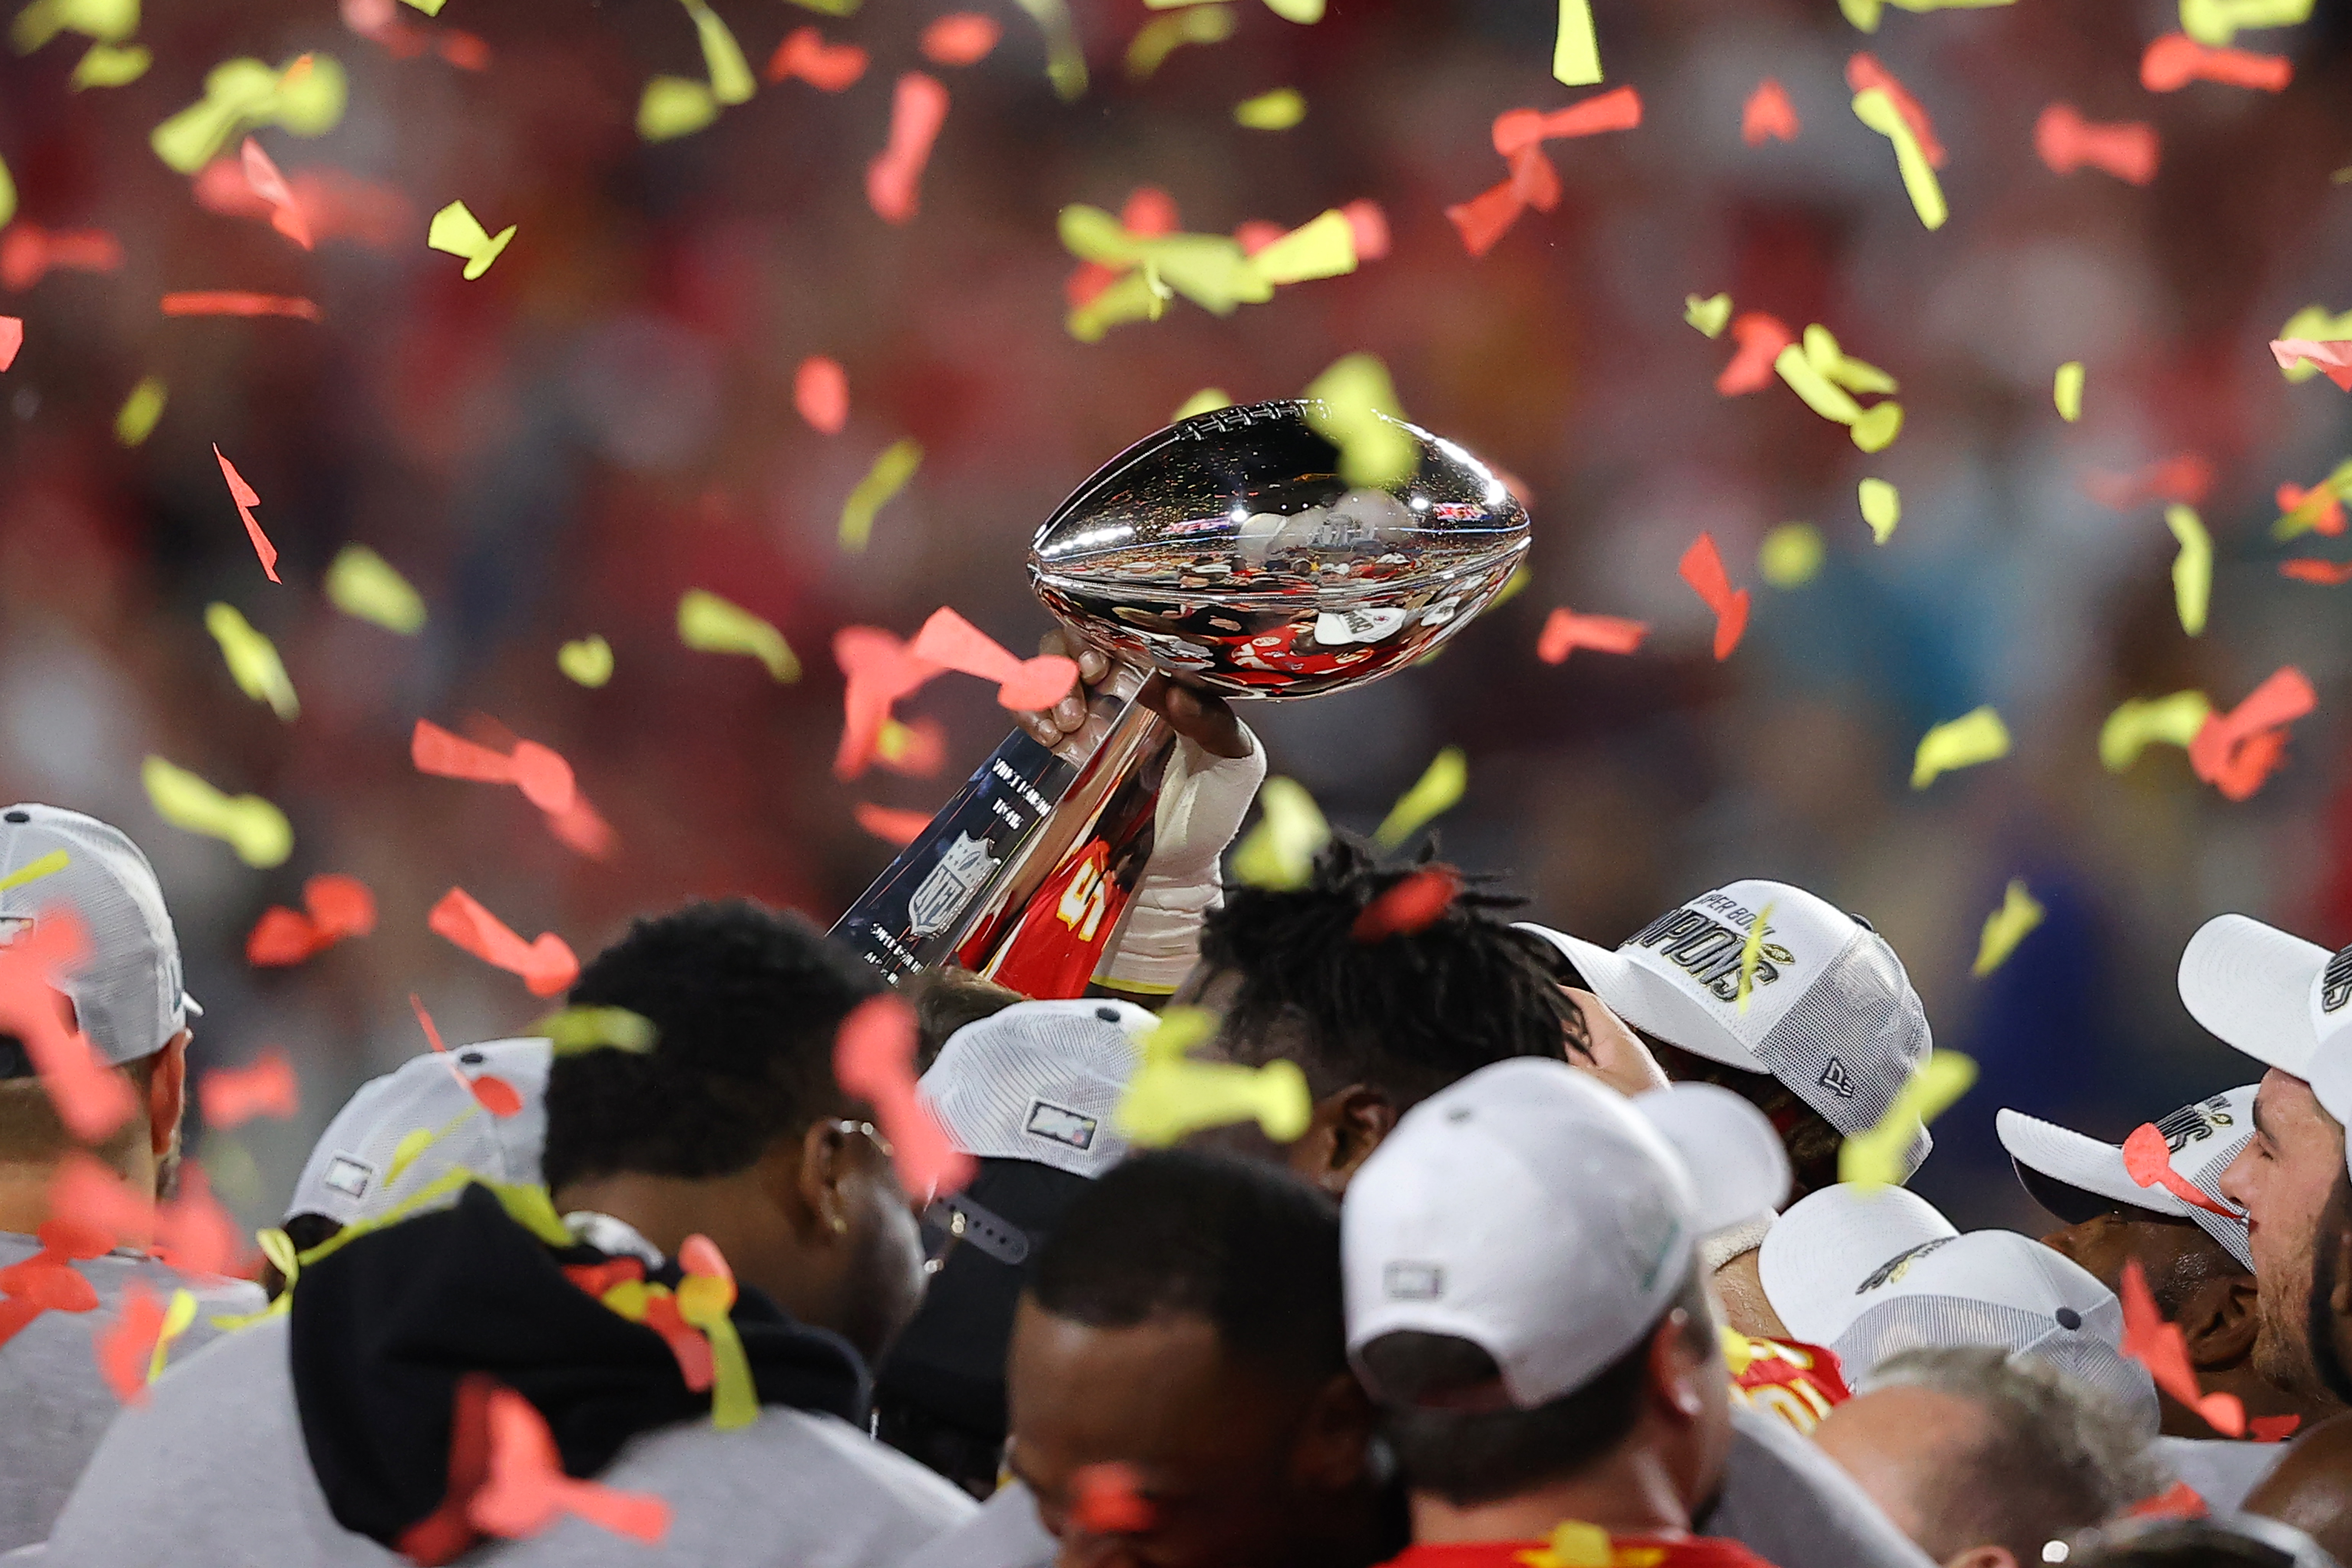 The Kansas City Chiefs celebrate with the Vince Lombardi Trophy after defeating the San Francisco 49ers 31-20 in Super Bowl LIV at Hard Rock Stadium on February 02, 2020 in Miami, Florida.